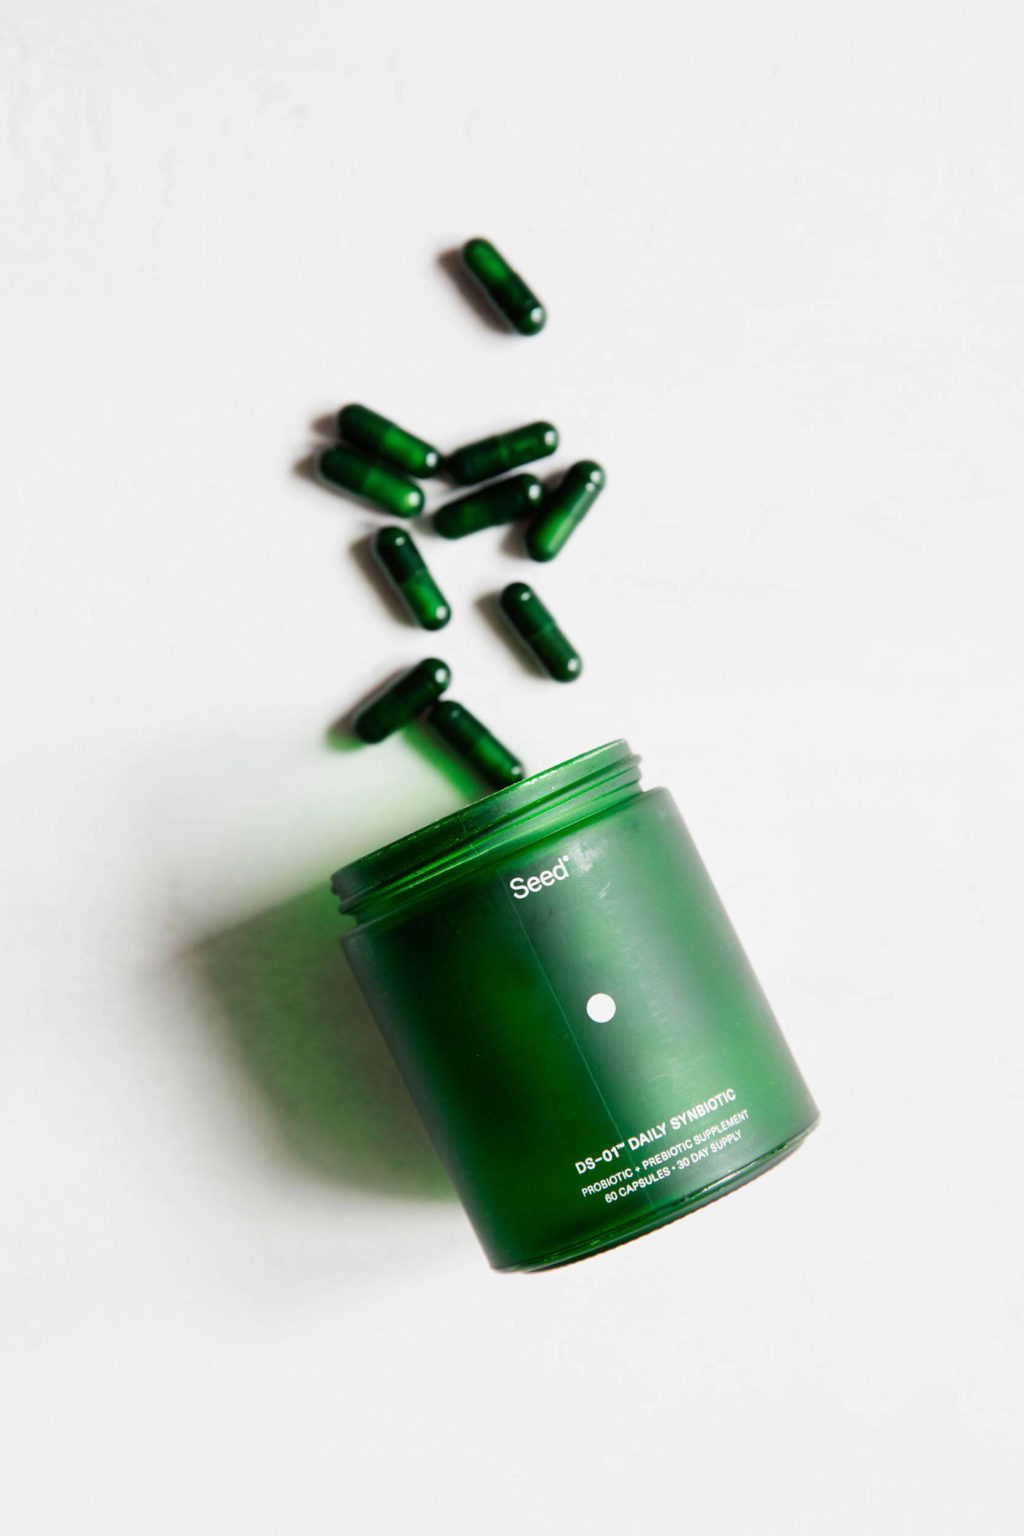 A green bottle is laid on a white surface, with green capsule shaped pills tumbling out beside it.